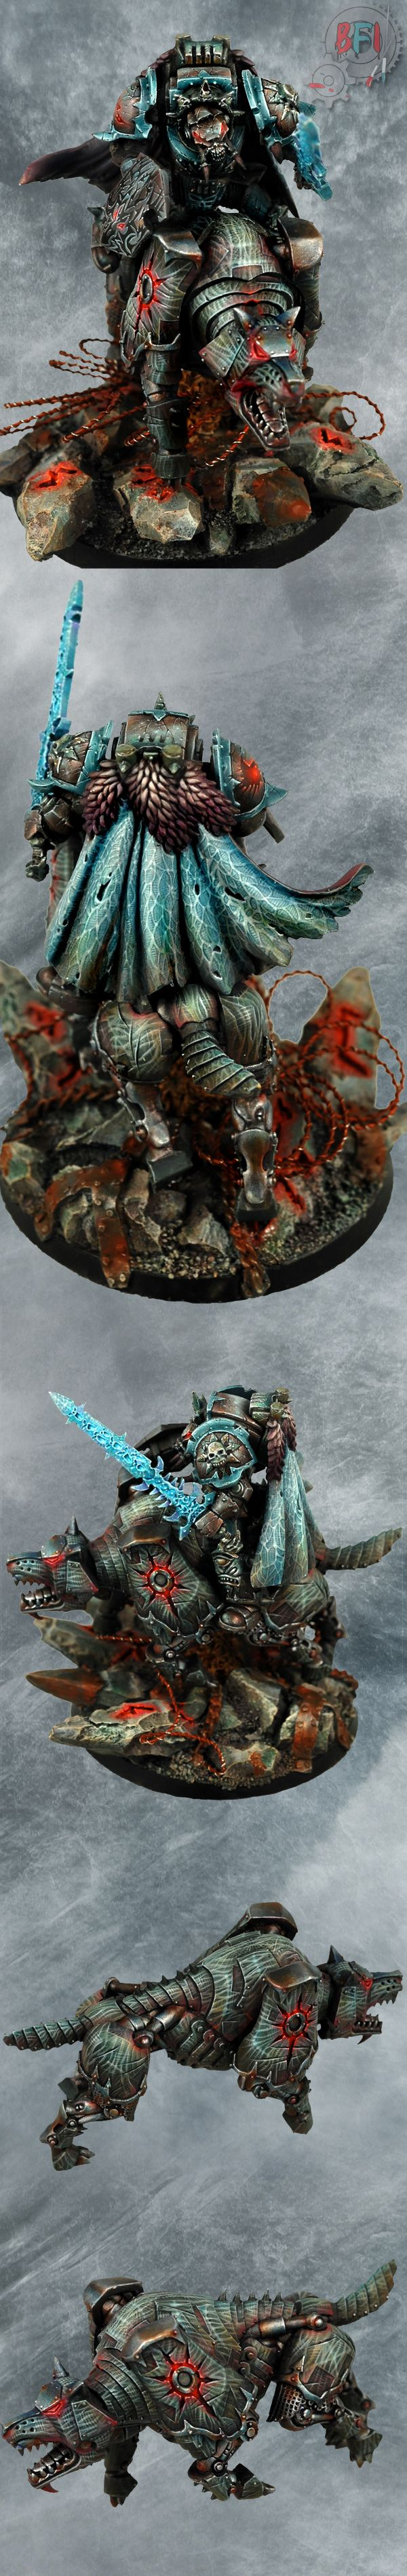 Warhammer 40k, Chaos Space Marines, Traitor Space Wolves (?!) Wolf Lord and Deamon Blade